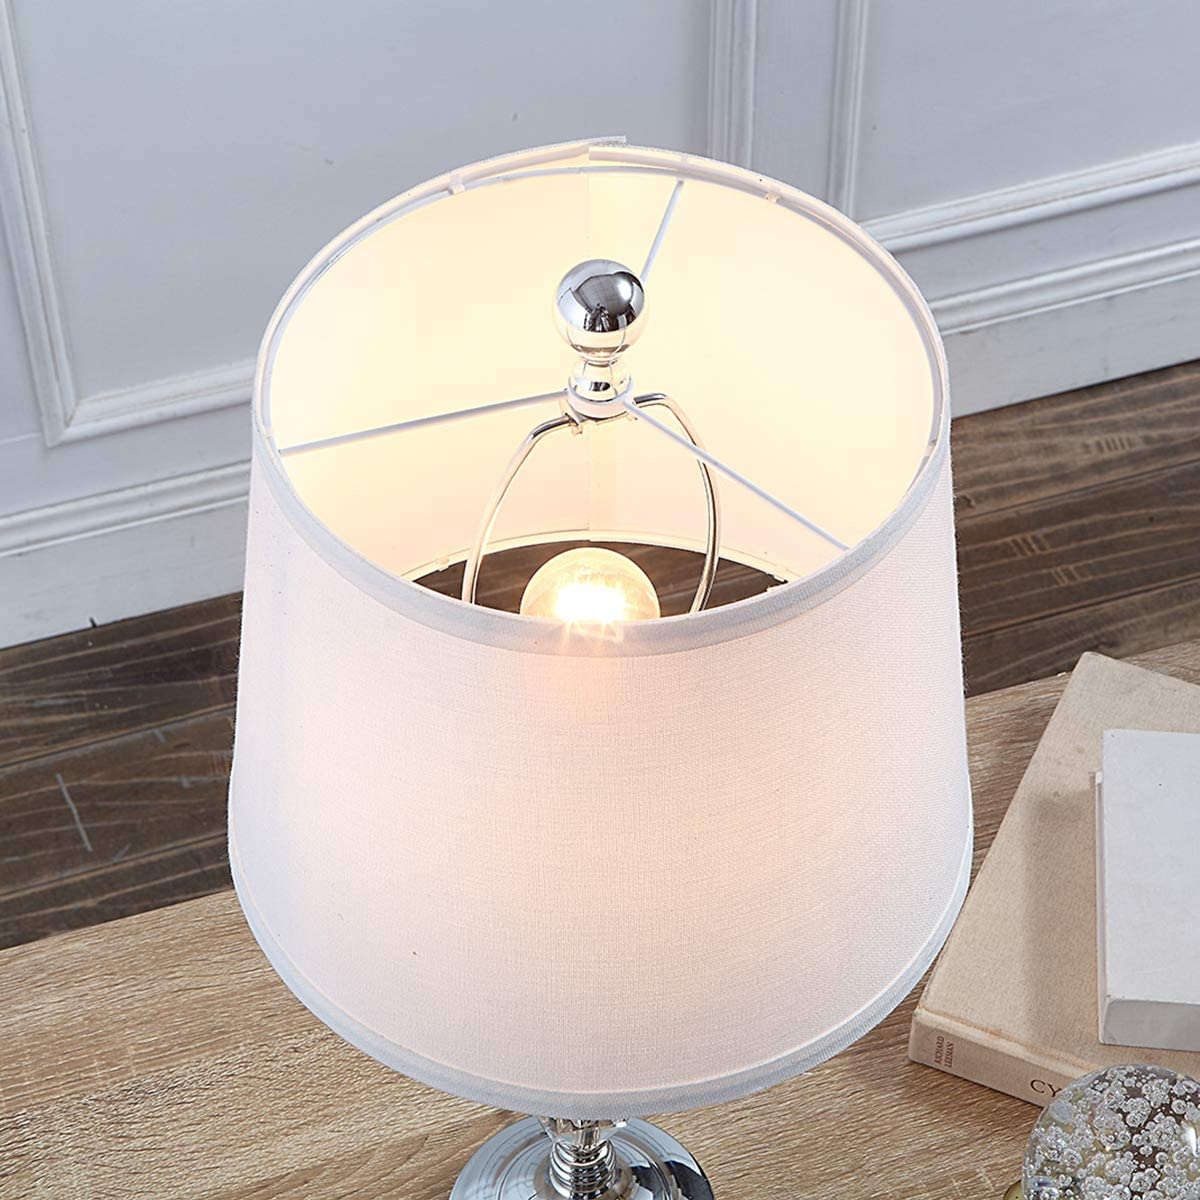 Topotdor 22 Crystal Table Lamp with 2 USB Charging Ports Set of 2,Modern Bedside Lamp with Beige Lamp Shade Perfect Bedroom Living Room Office